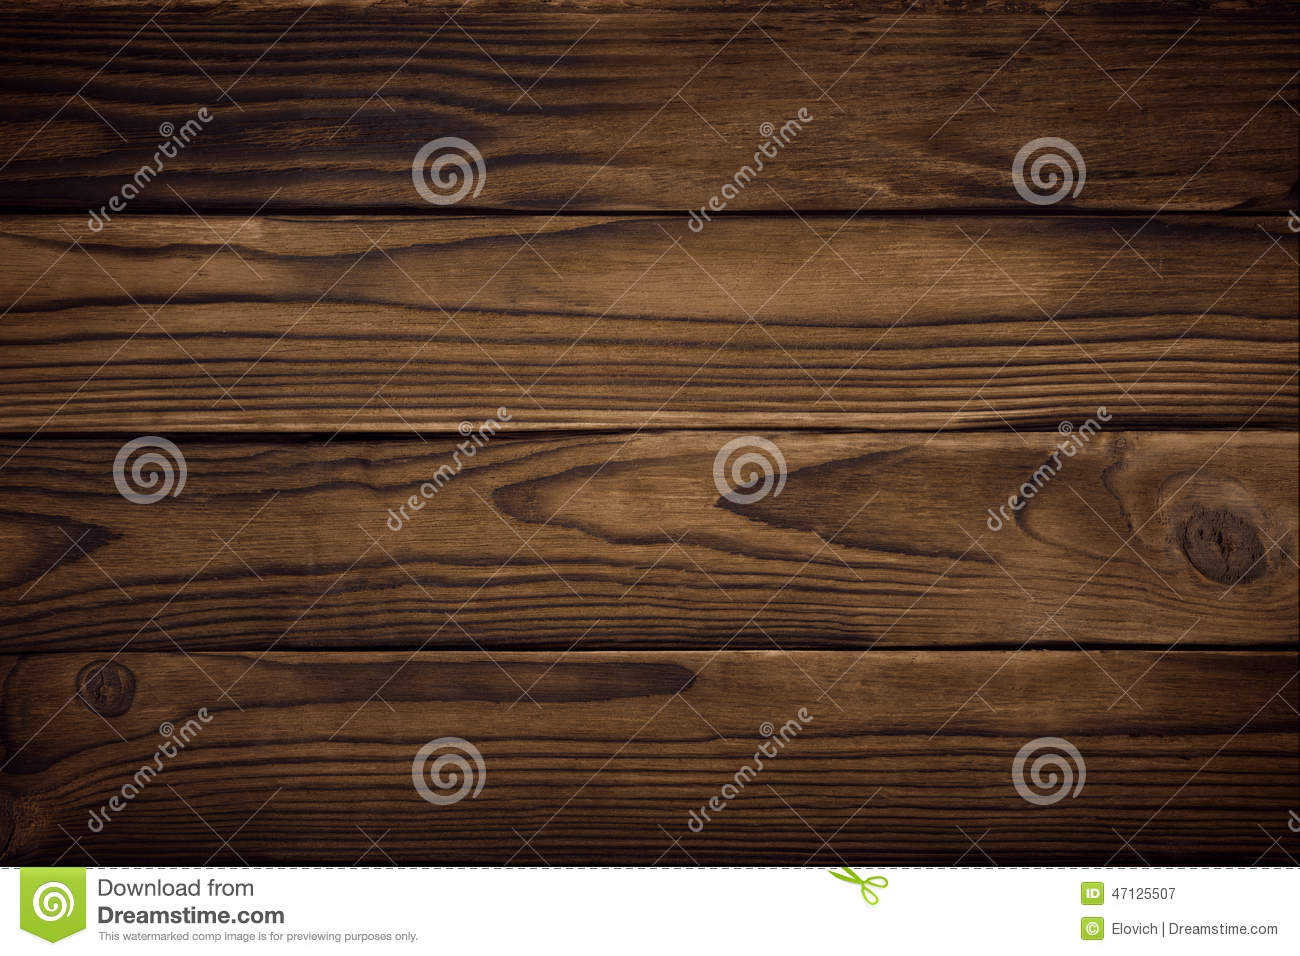 texture en bois fonc e image stock image du mat riau. Black Bedroom Furniture Sets. Home Design Ideas